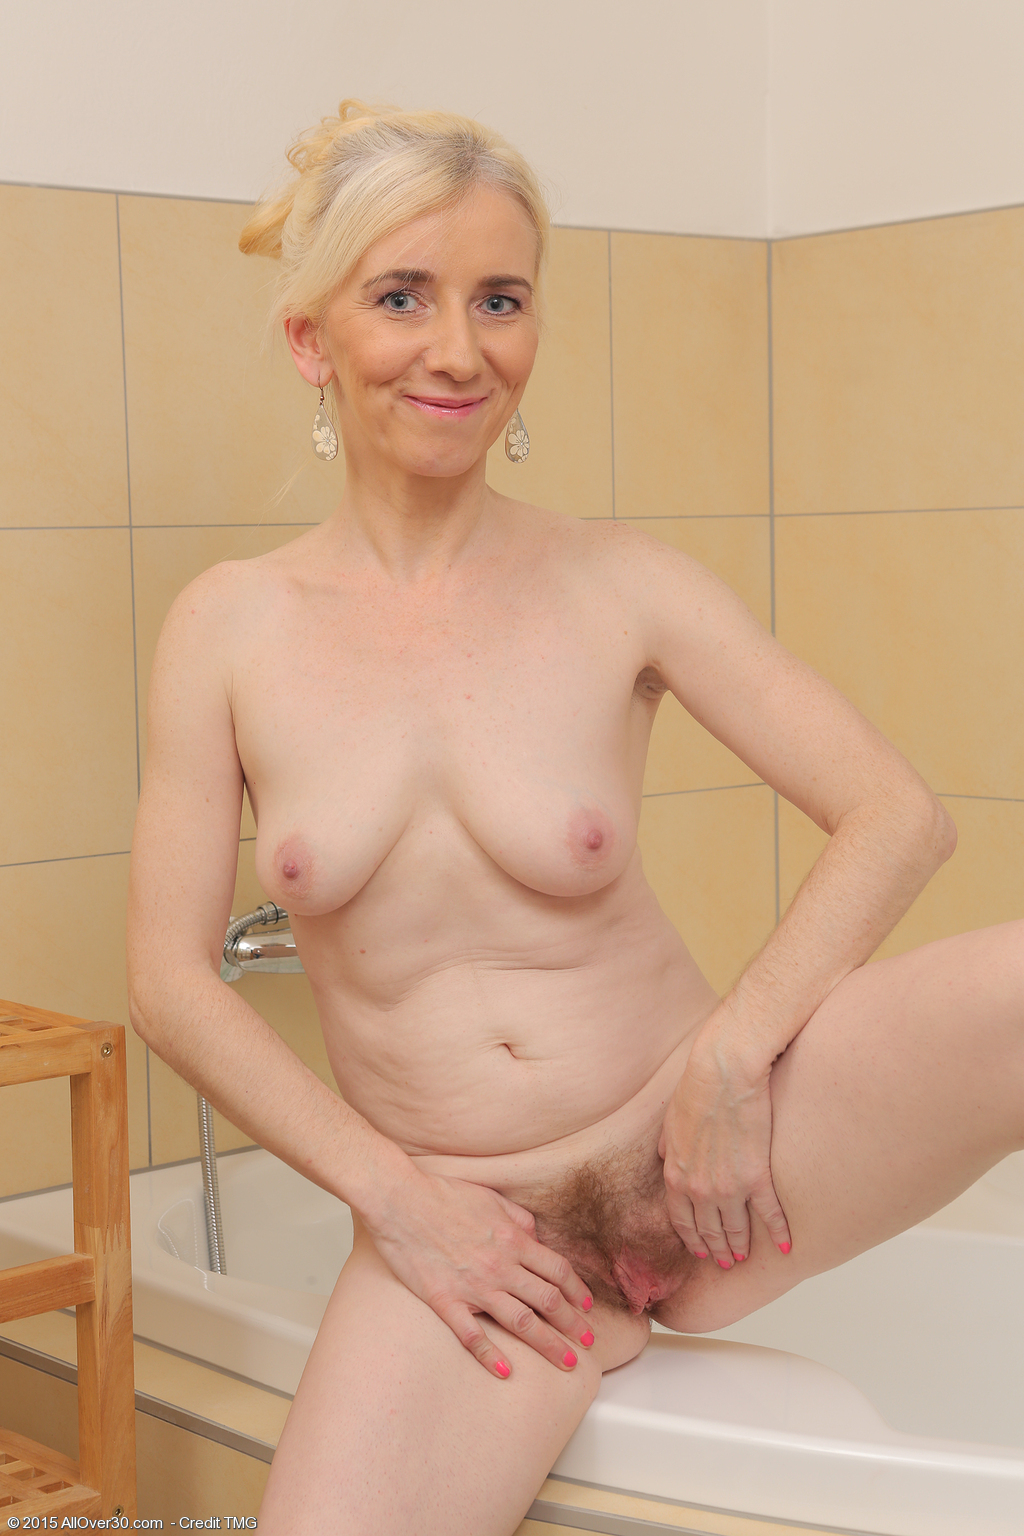 Down! Mature nude blonde girls all